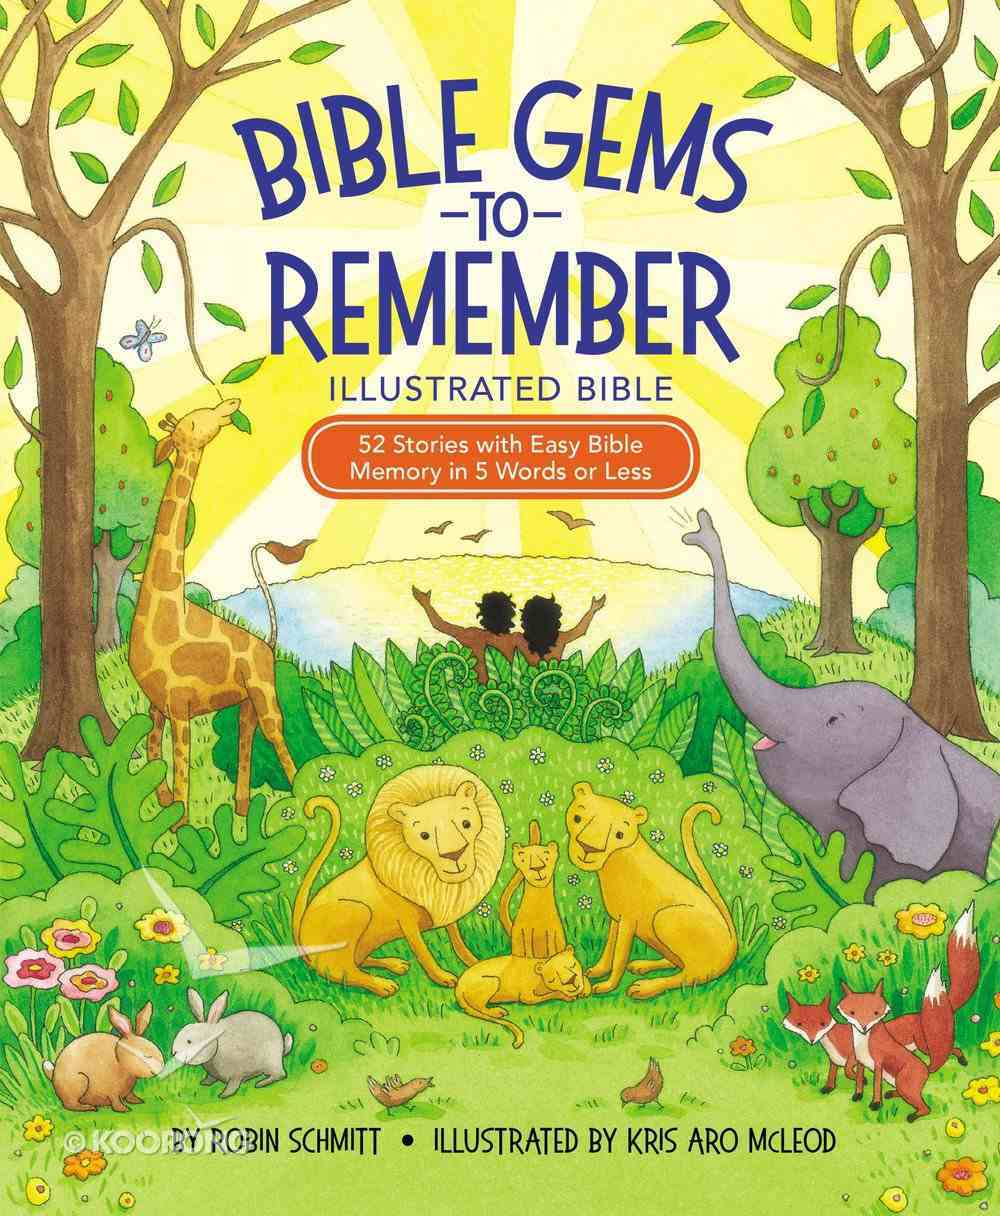 Bible Gems to Remember Illustrated Bible: 52 Stories With Easy Bible Memory in 5 Words Or Less Hardback